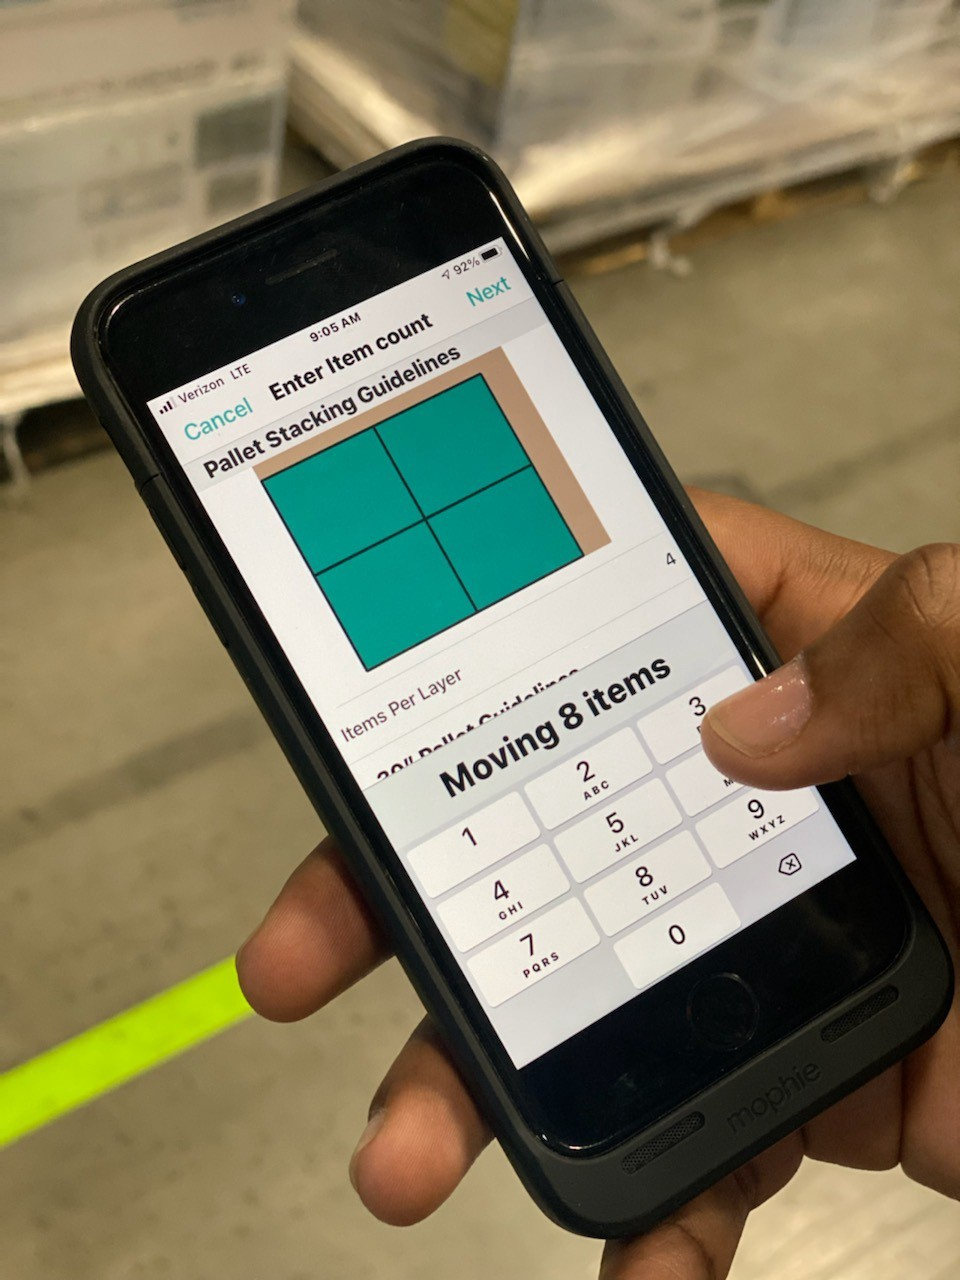 Recently, Clutter released a feature to present the optimal pallet composition for a given Stock Keeping Unit (SKU) in our internal iOS app for our wa